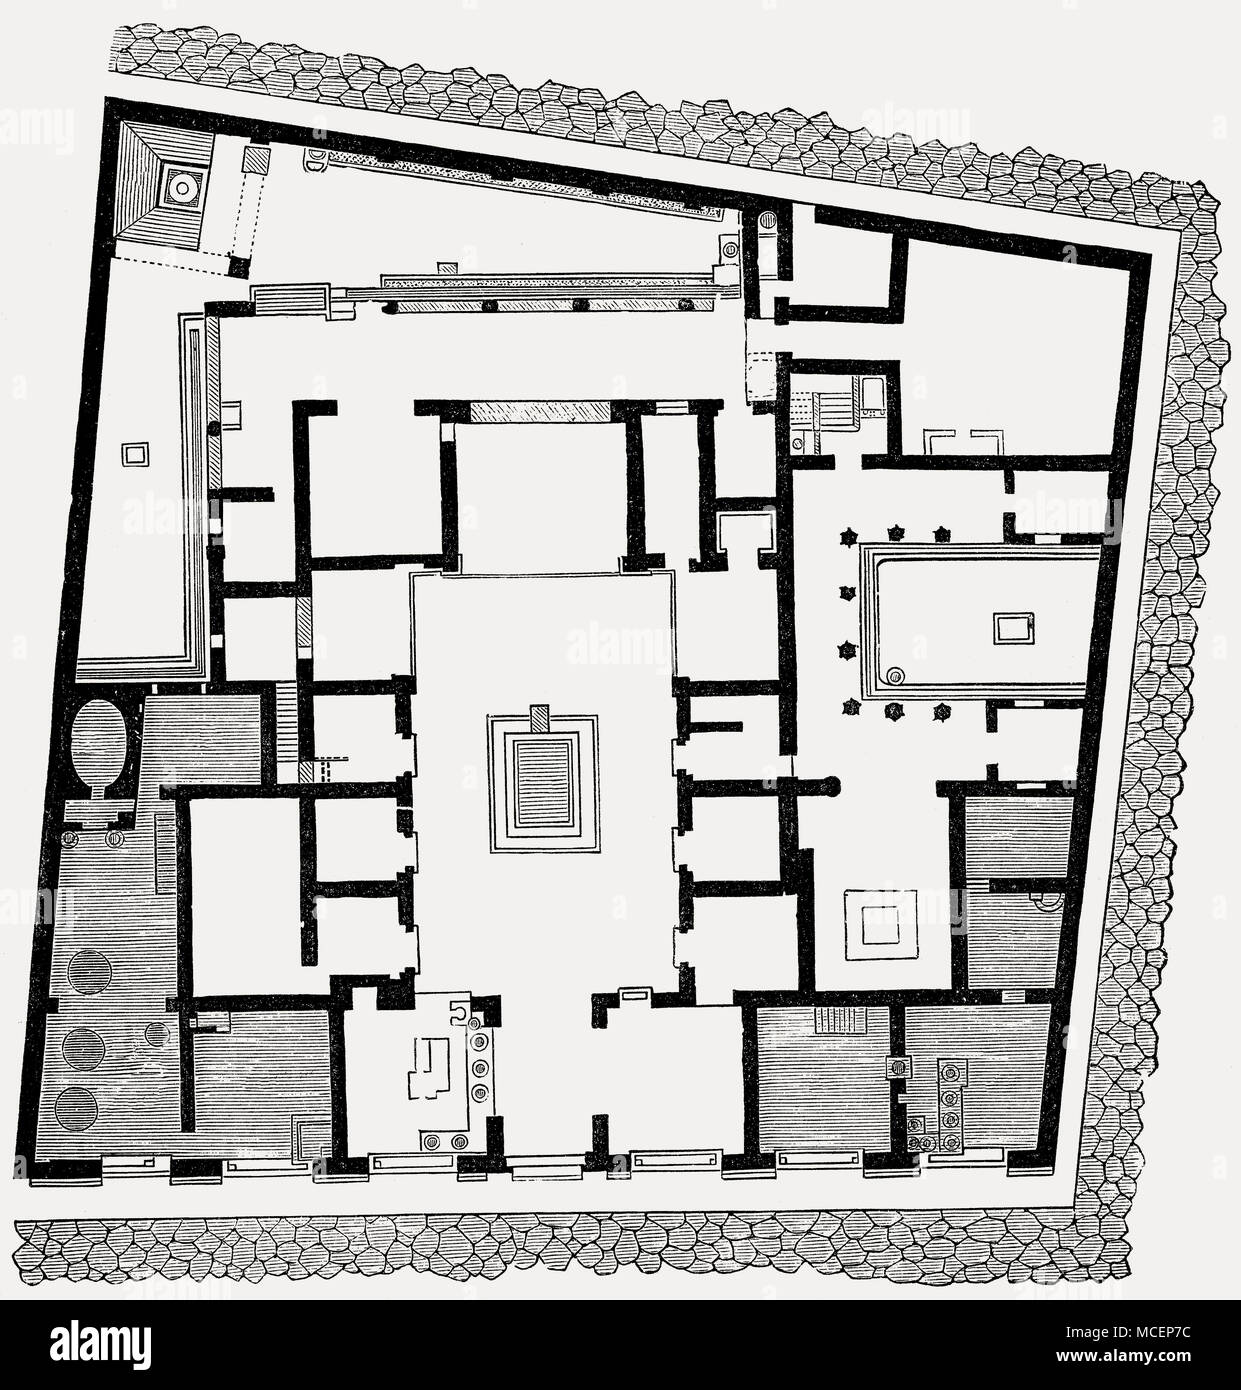 hight resolution of plan of the house of sallust ancient roman city of pompeii